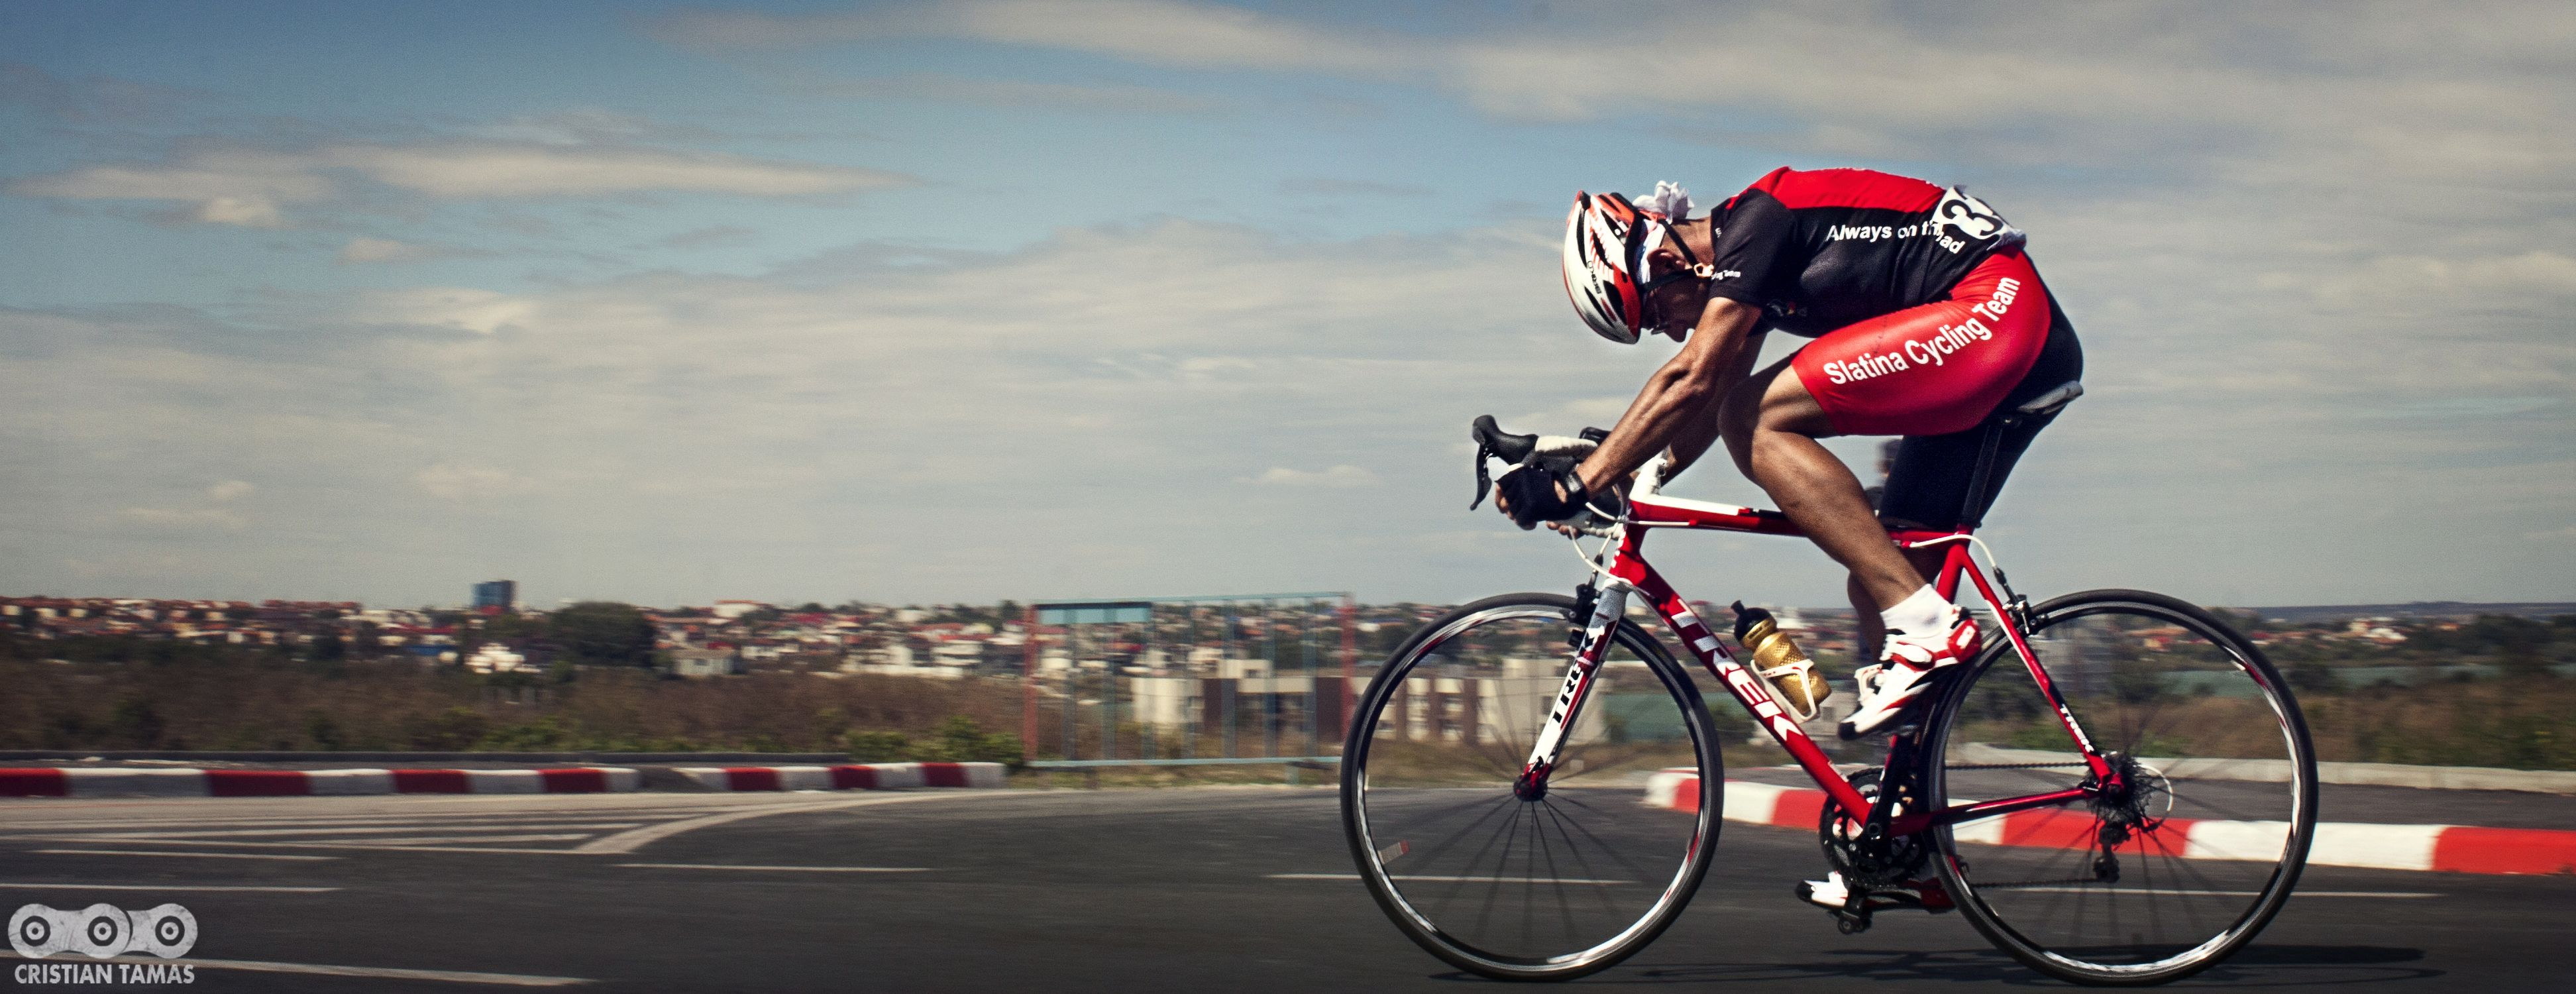 Fast & cycling